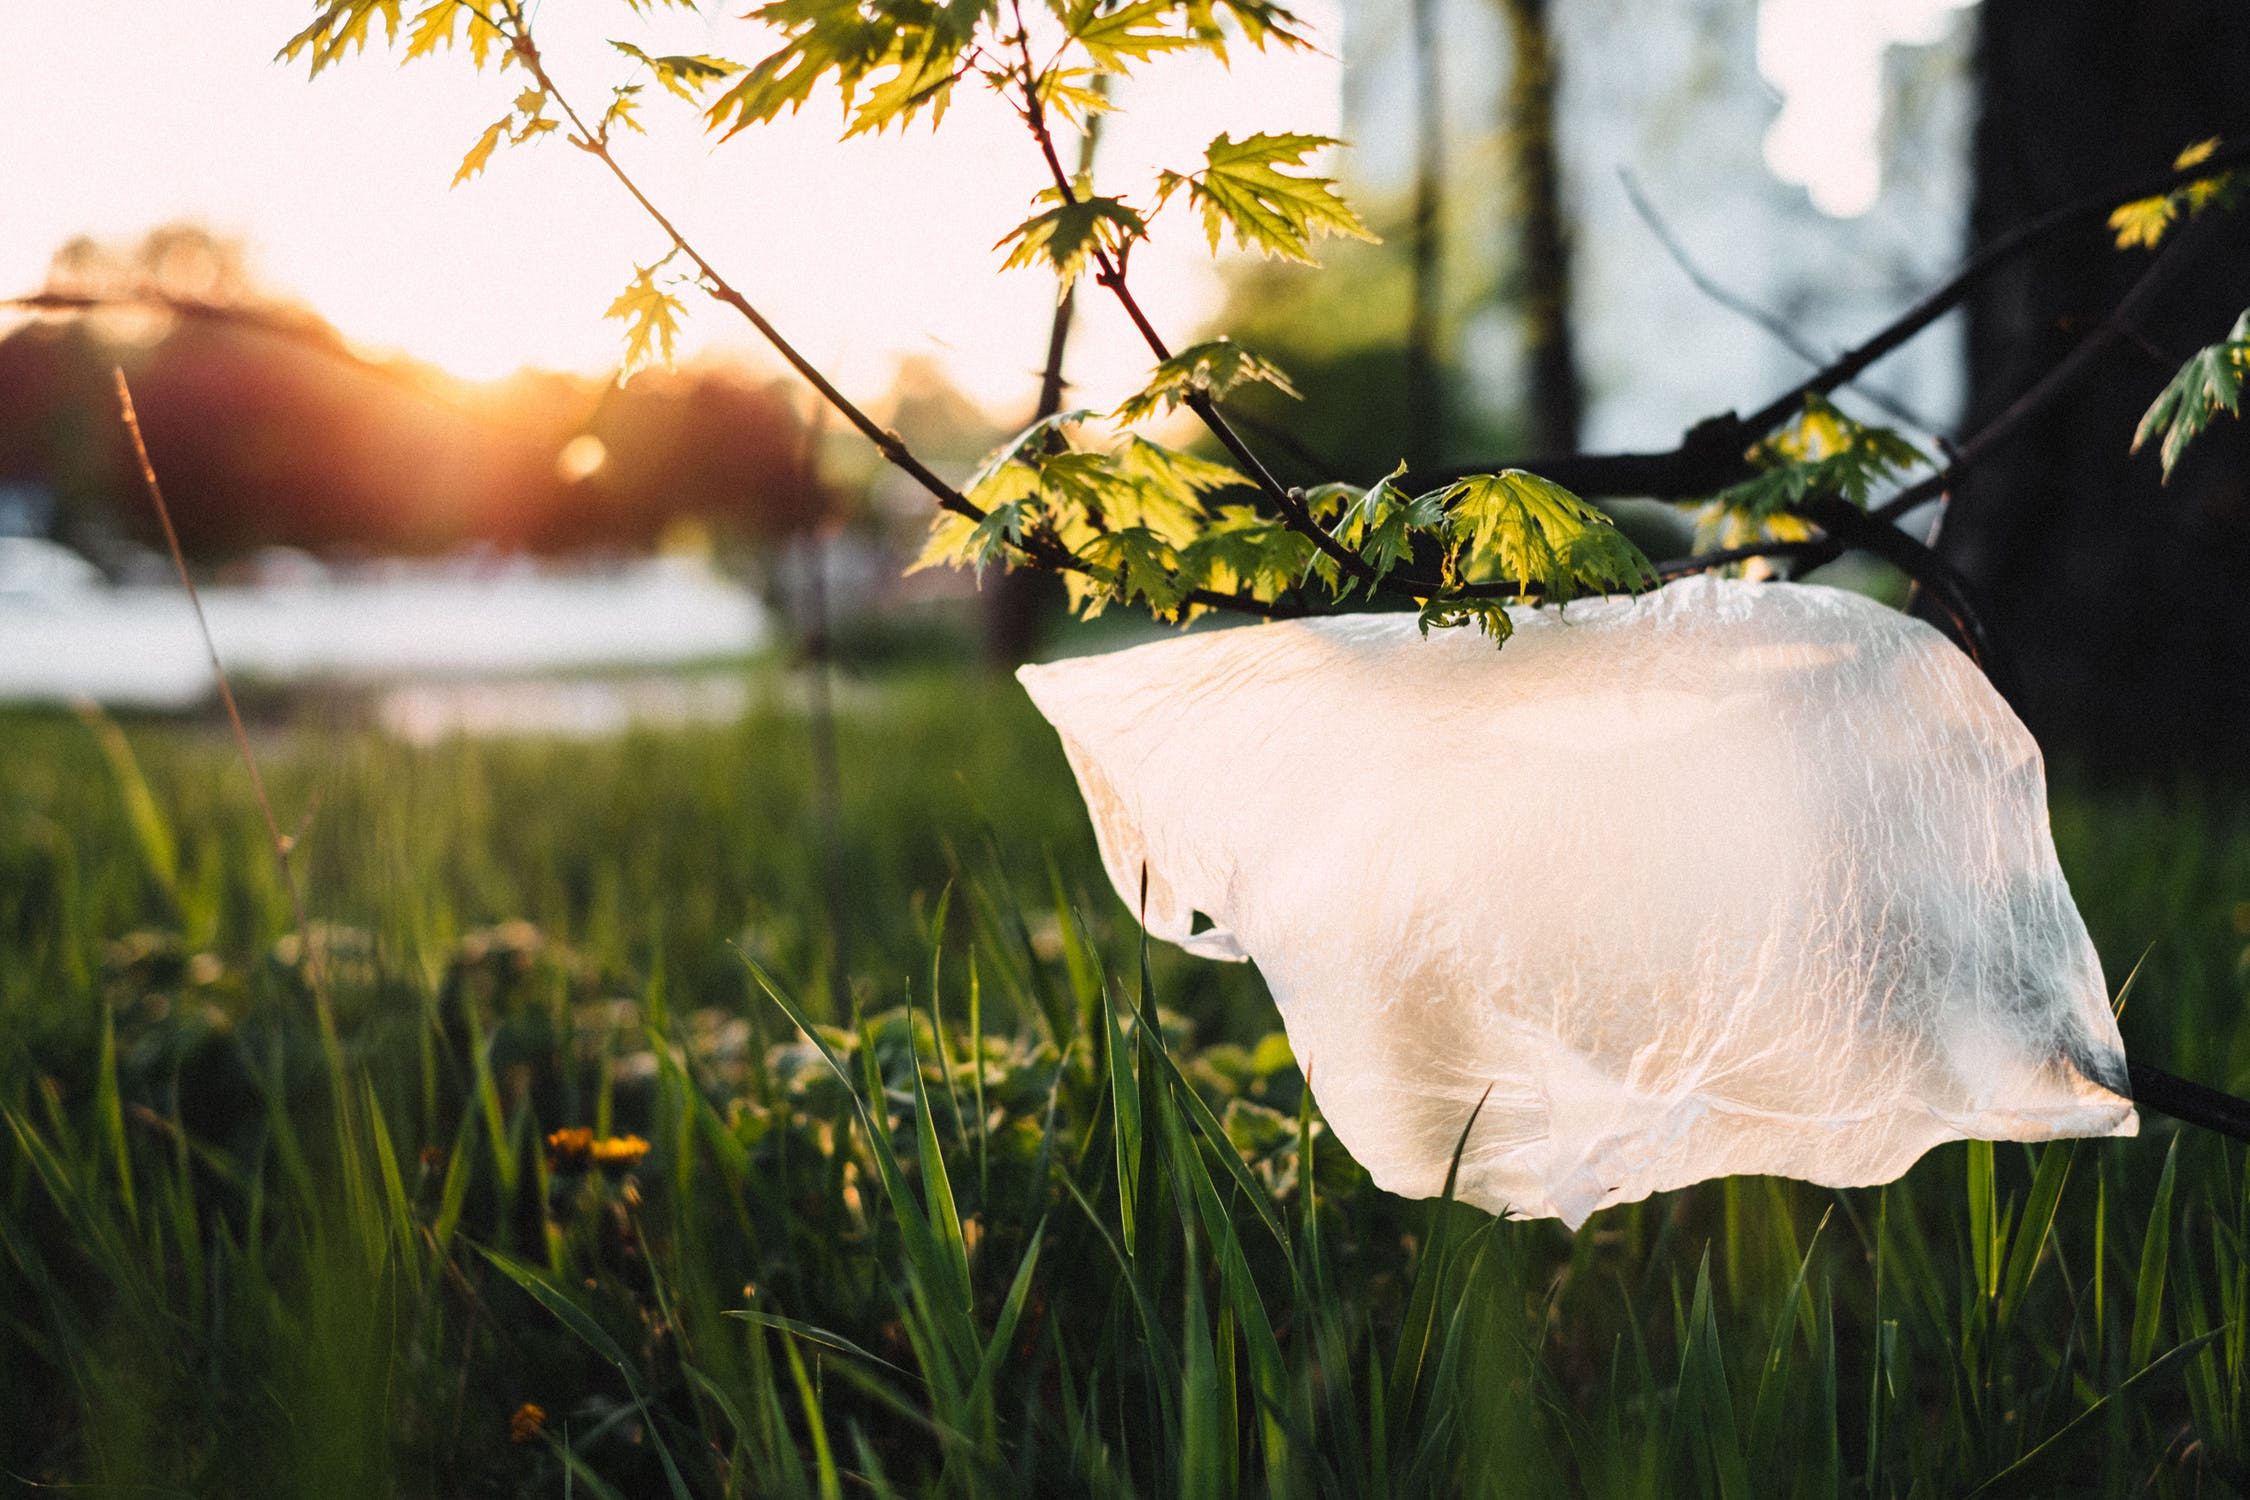 pexels photo 1141835 - How Plastic Bags Affect Our Lives